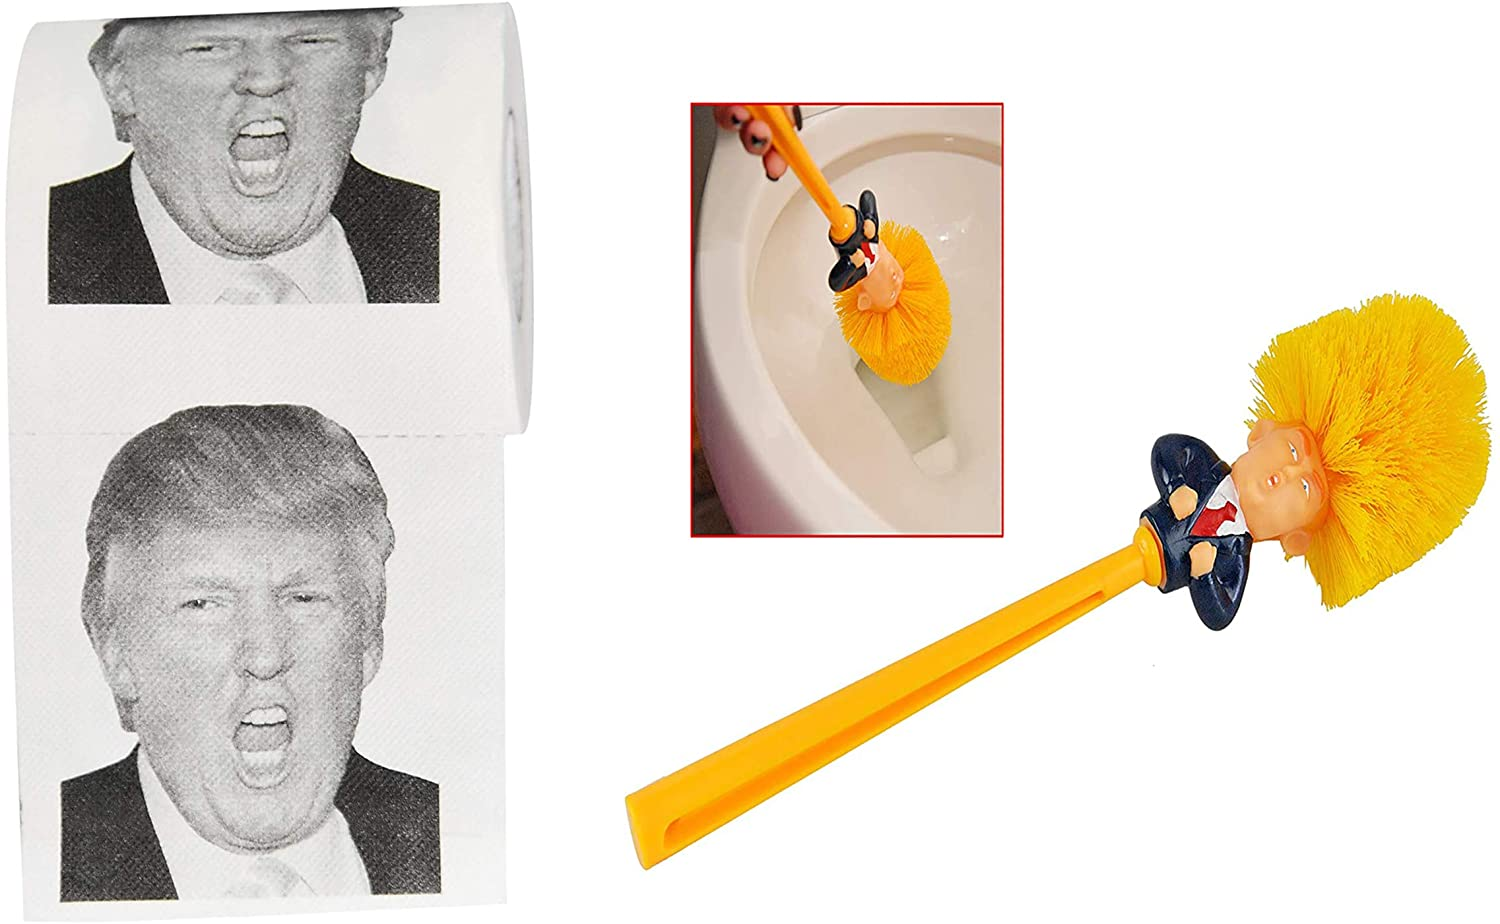 HOME-X Donald Trump Yelling Toilet Paper Roll & Toilet Brush Cleaner with Orange Handle, Funny Toilet Scrubber, Commander in Crap, Funny Political Novelty Gift, Secret Santa Gift